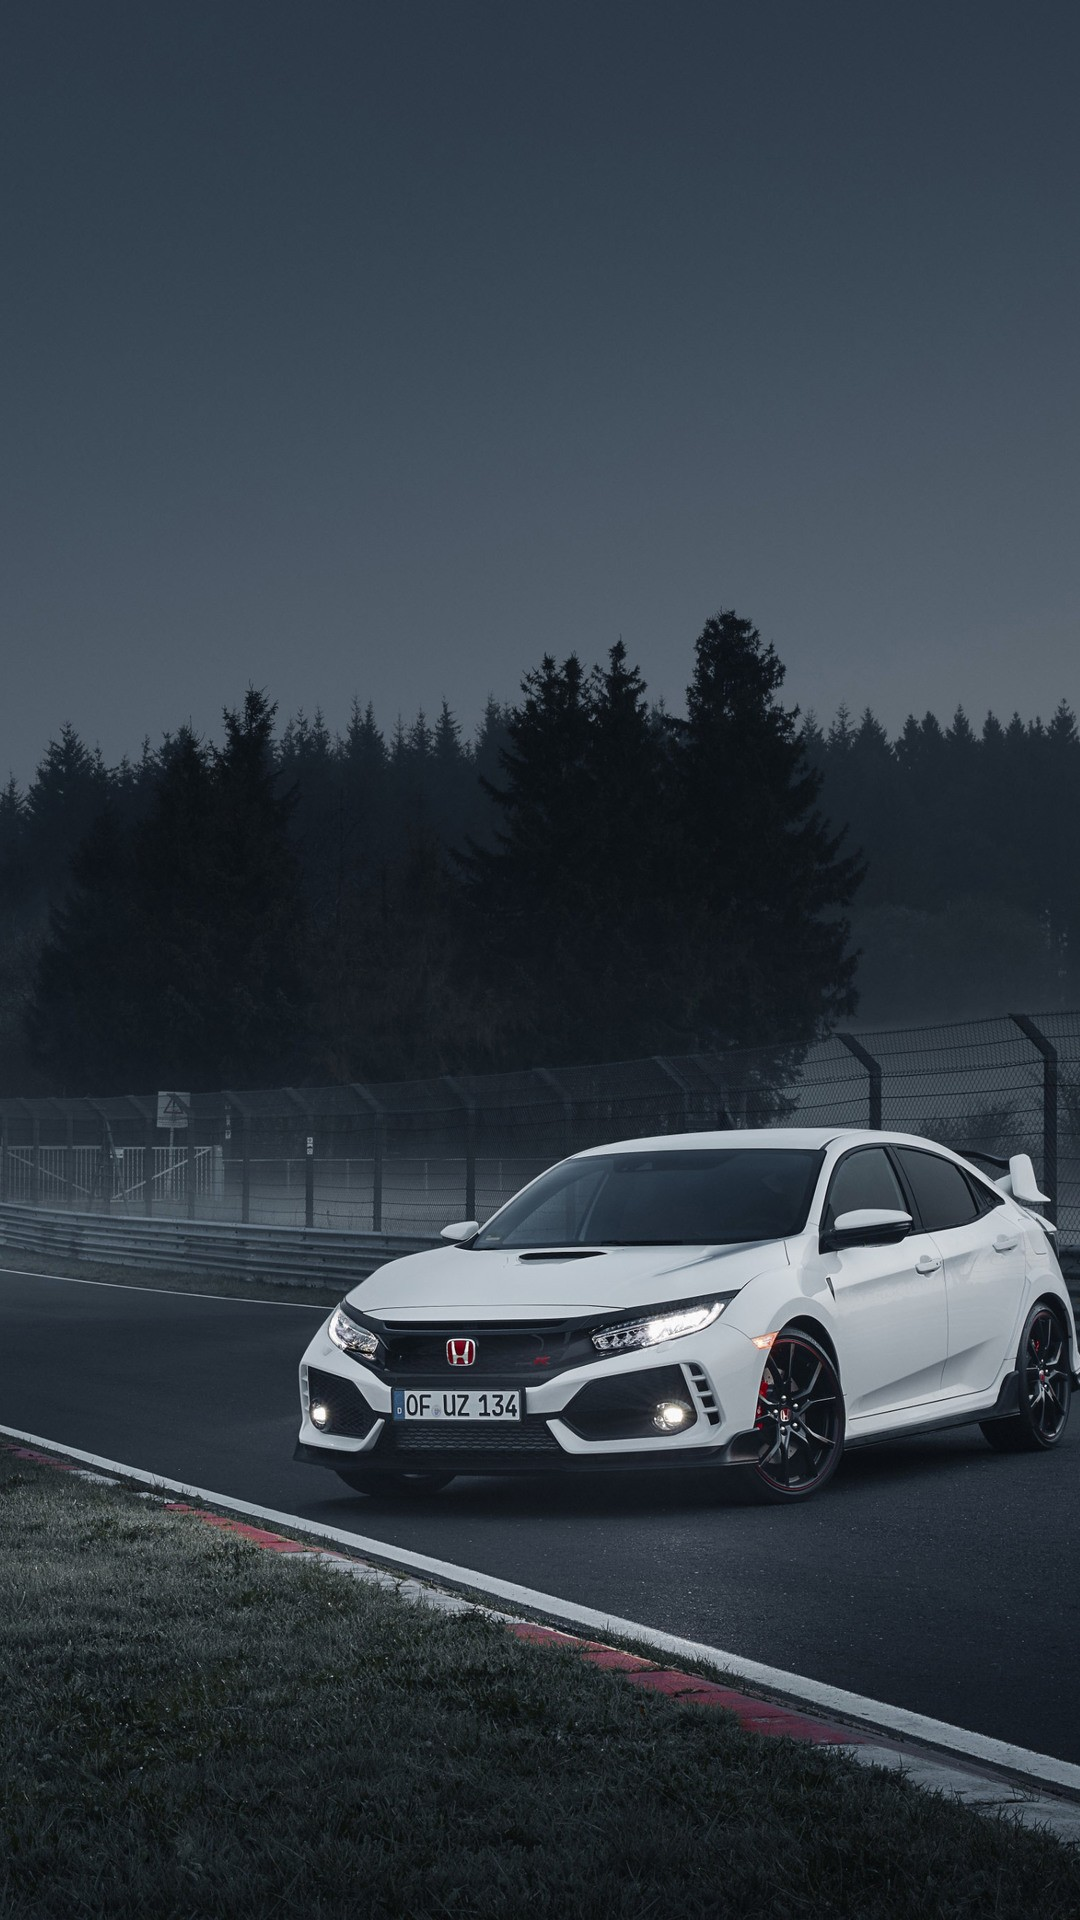 2018 Honda Civic Type R On Wallpaper 1080x1920 380x676